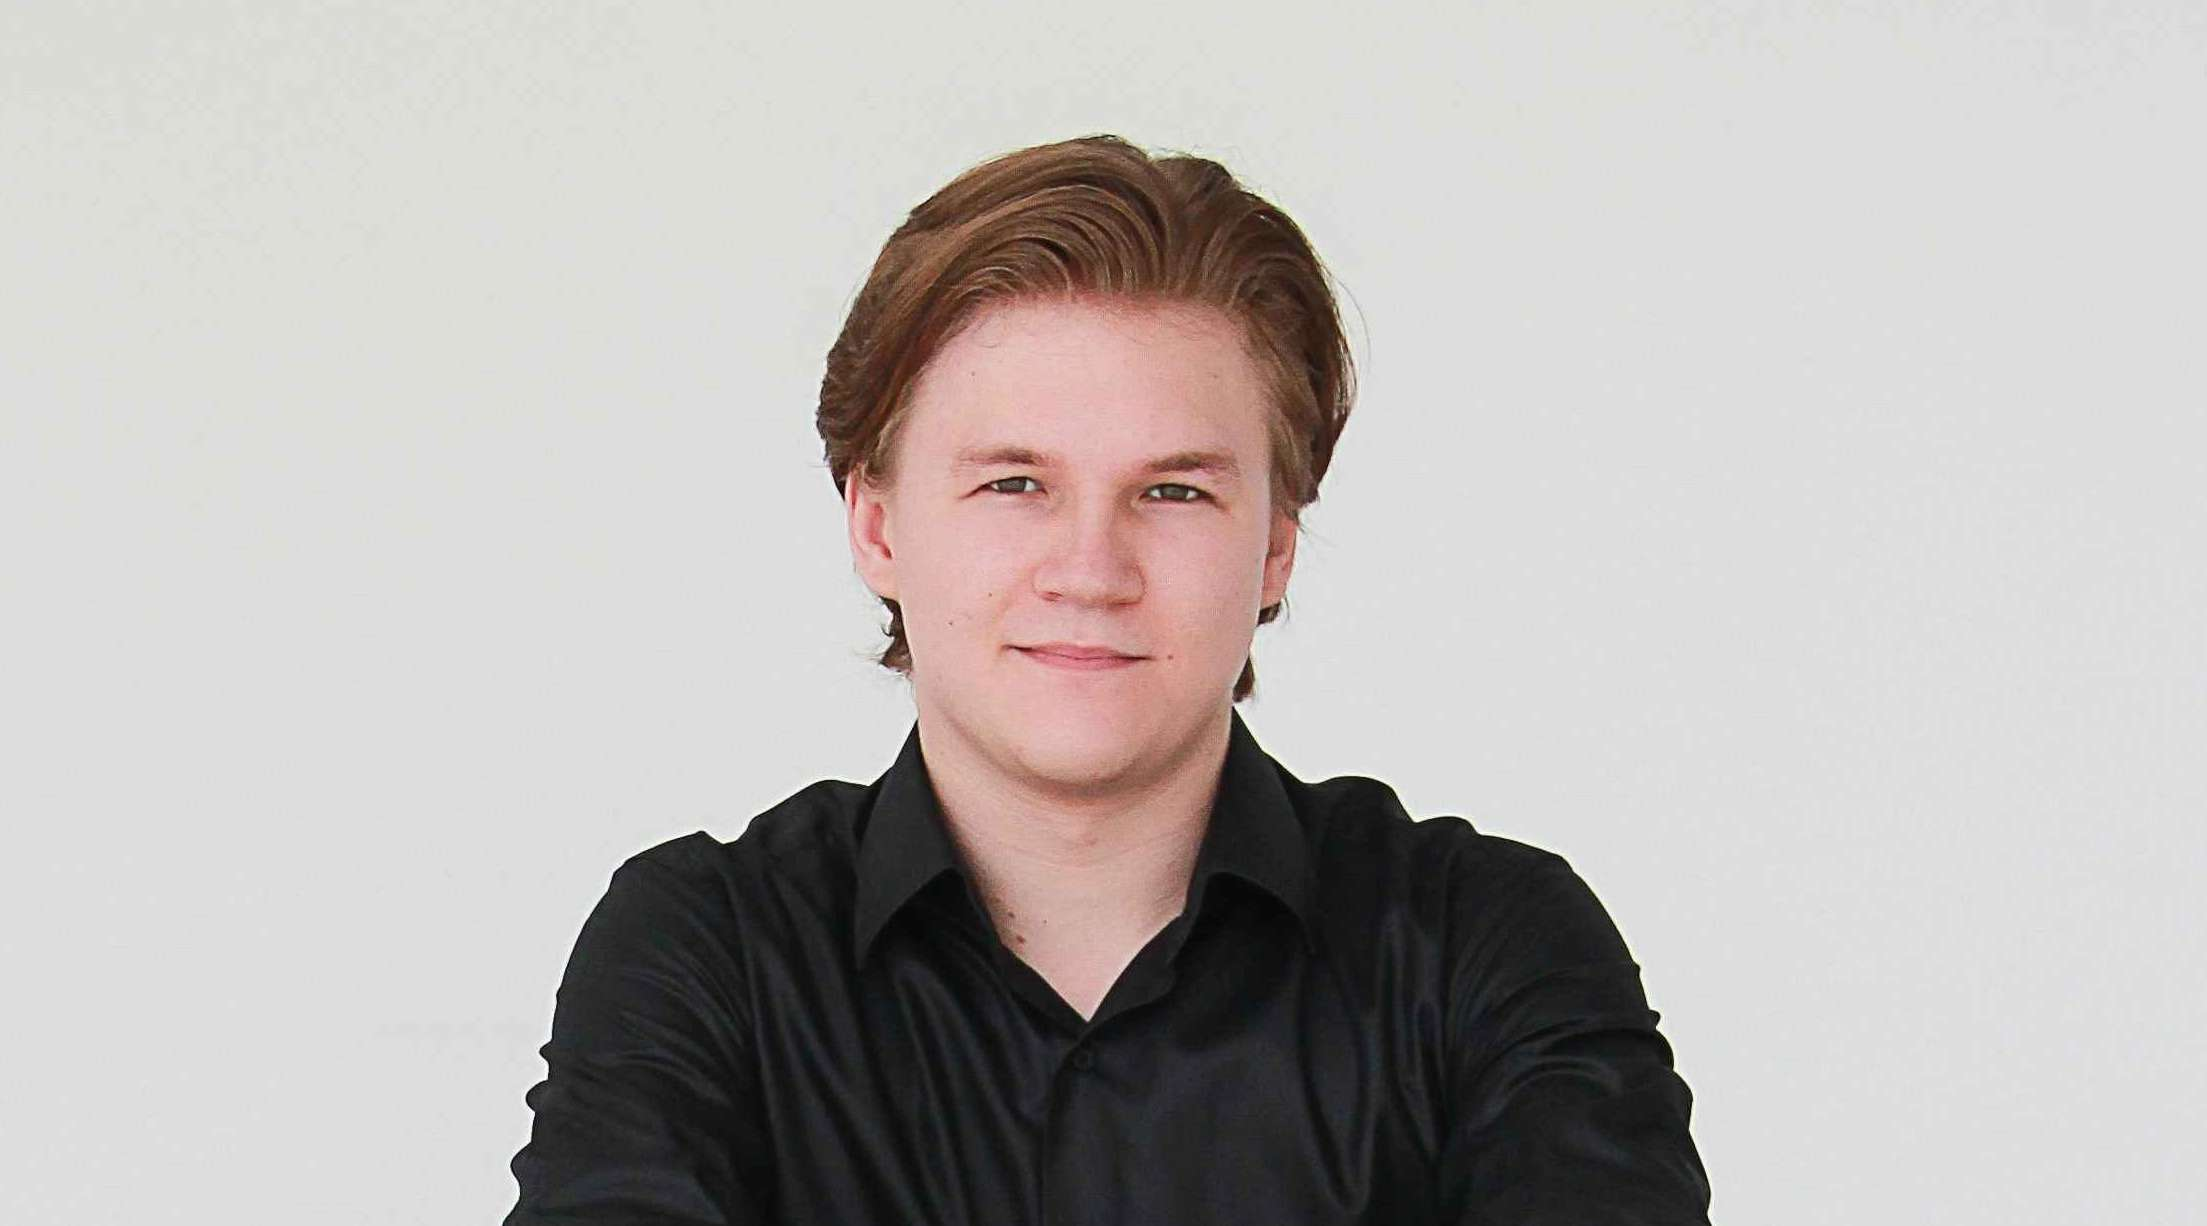 Guriy Guryev signs with TACT for General Management